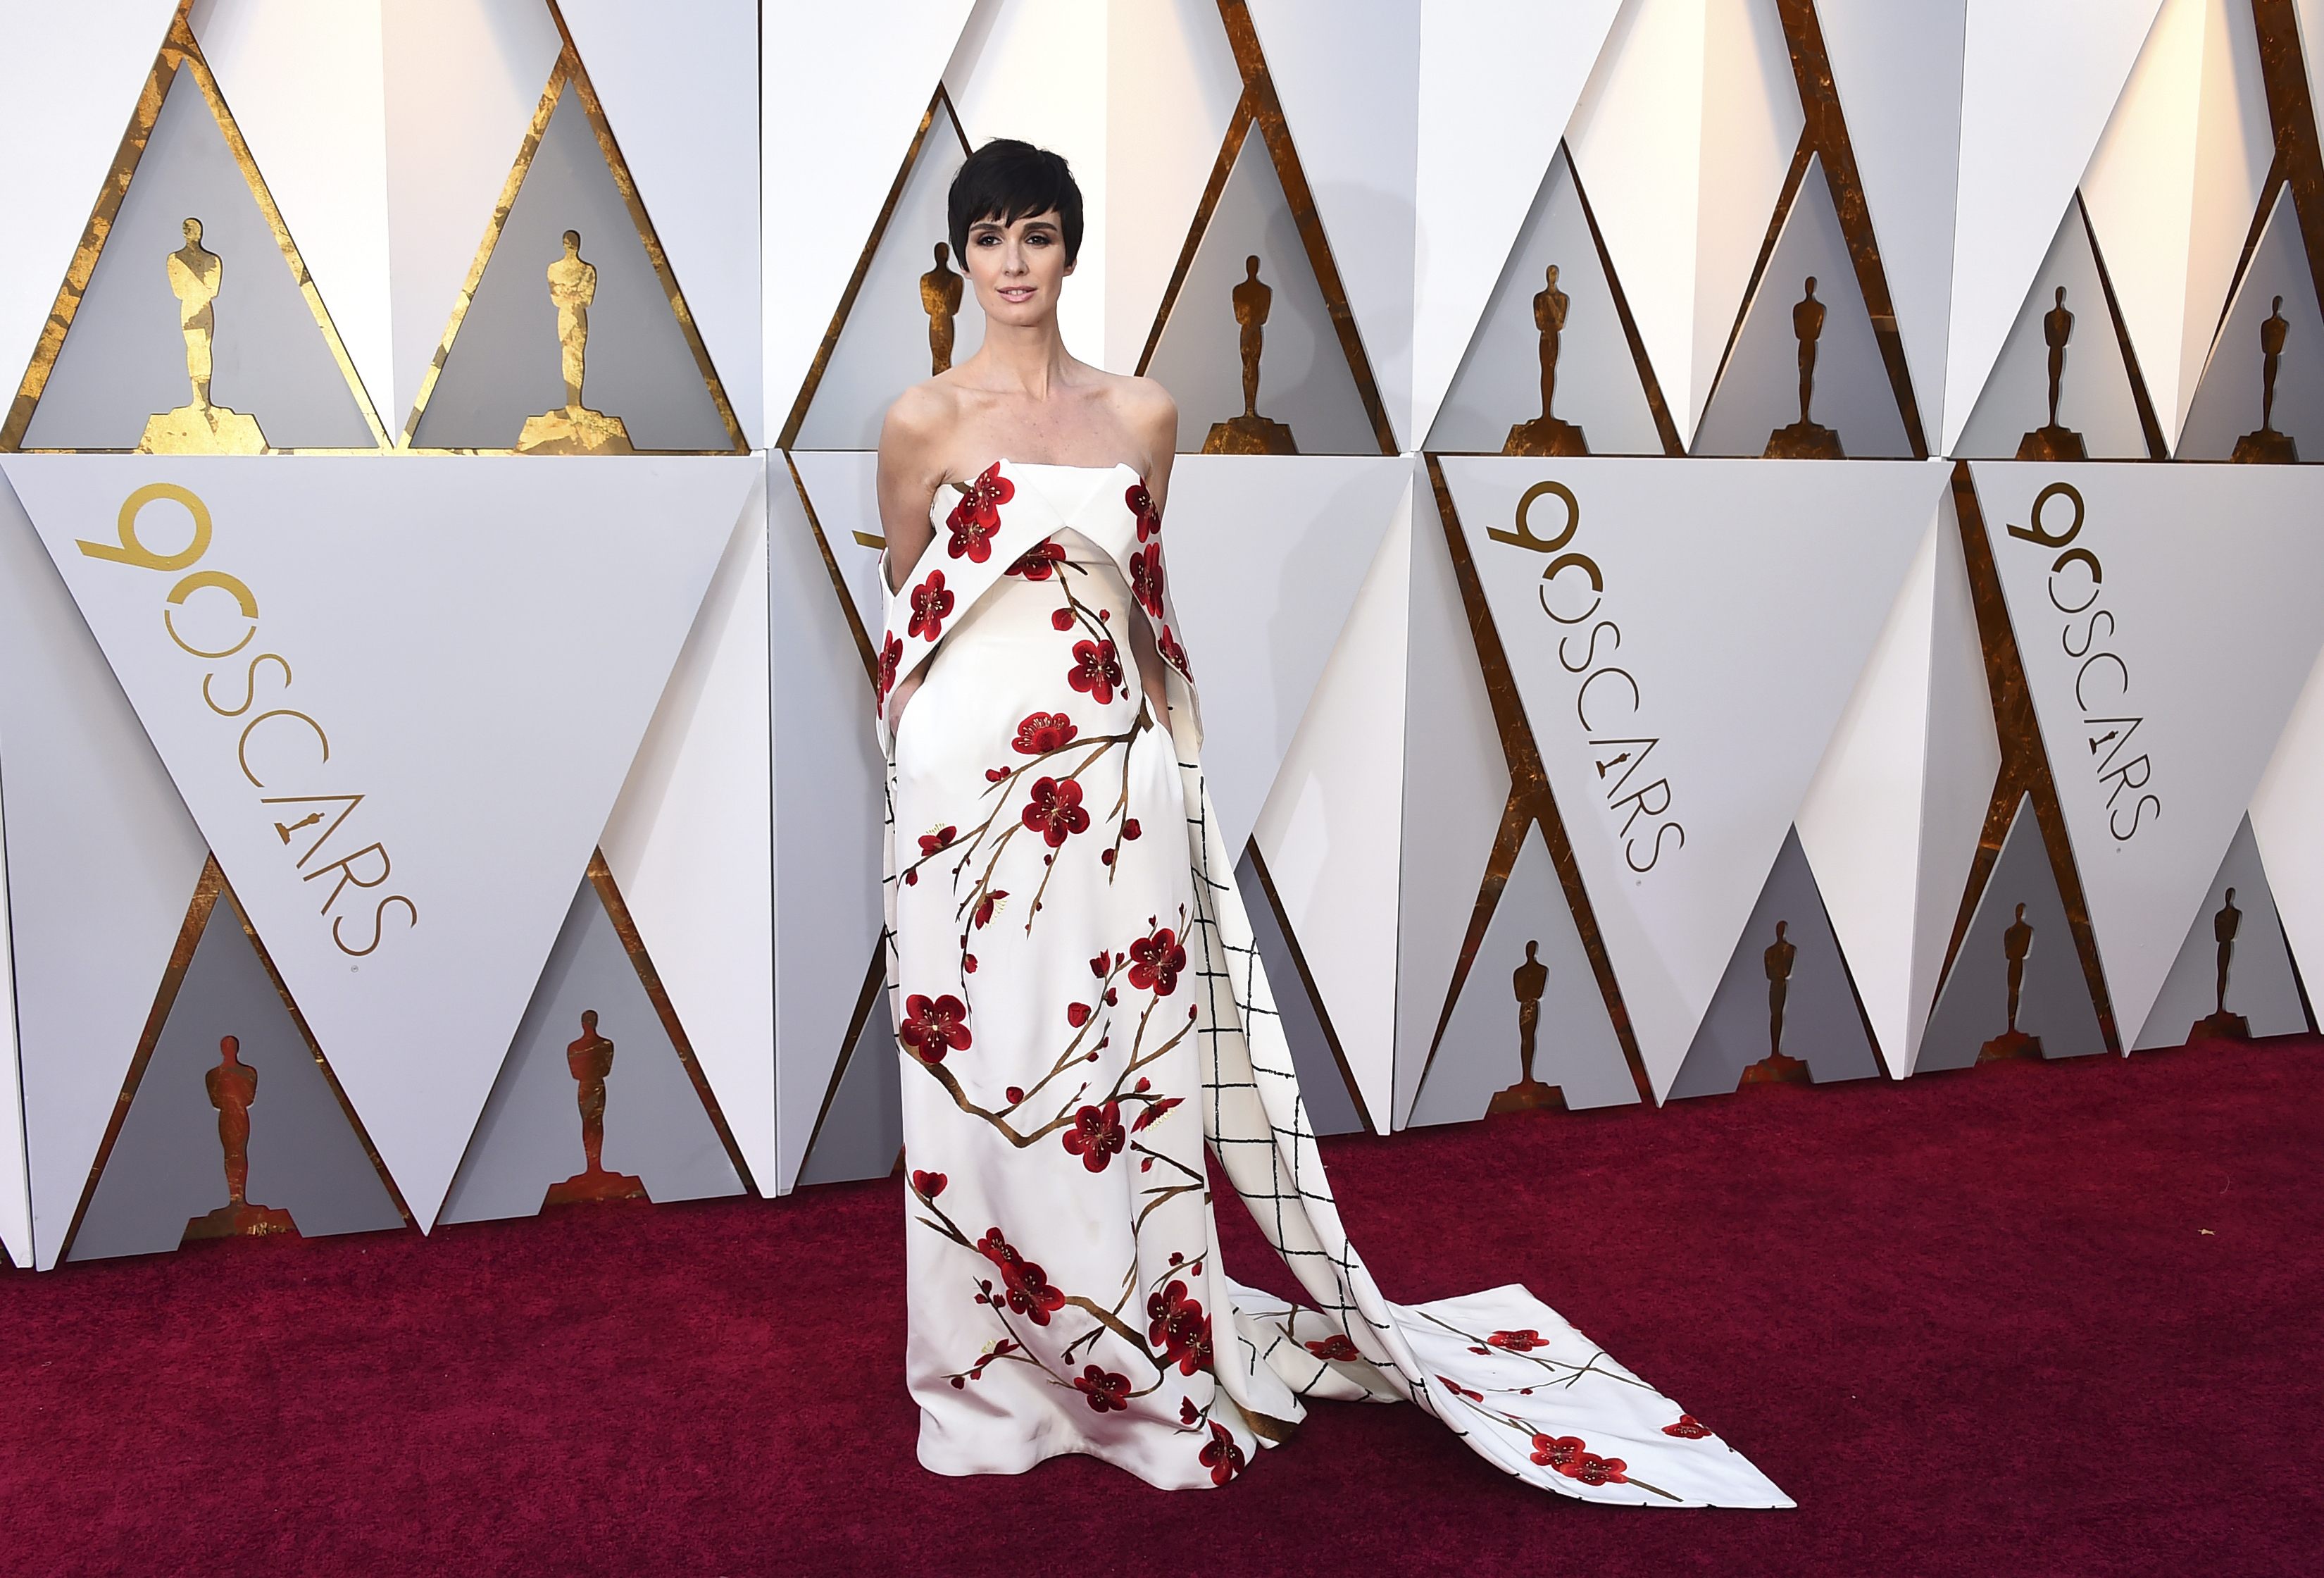 "<div class=""meta image-caption""><div class=""origin-logo origin-image none""><span>none</span></div><span class=""caption-text"">Paz Vega arrives at the Oscars on Sunday, March 4, 2018, at the Dolby Theatre in Los Angeles. (Jordan Strauss/Invision/AP)</span></div>"